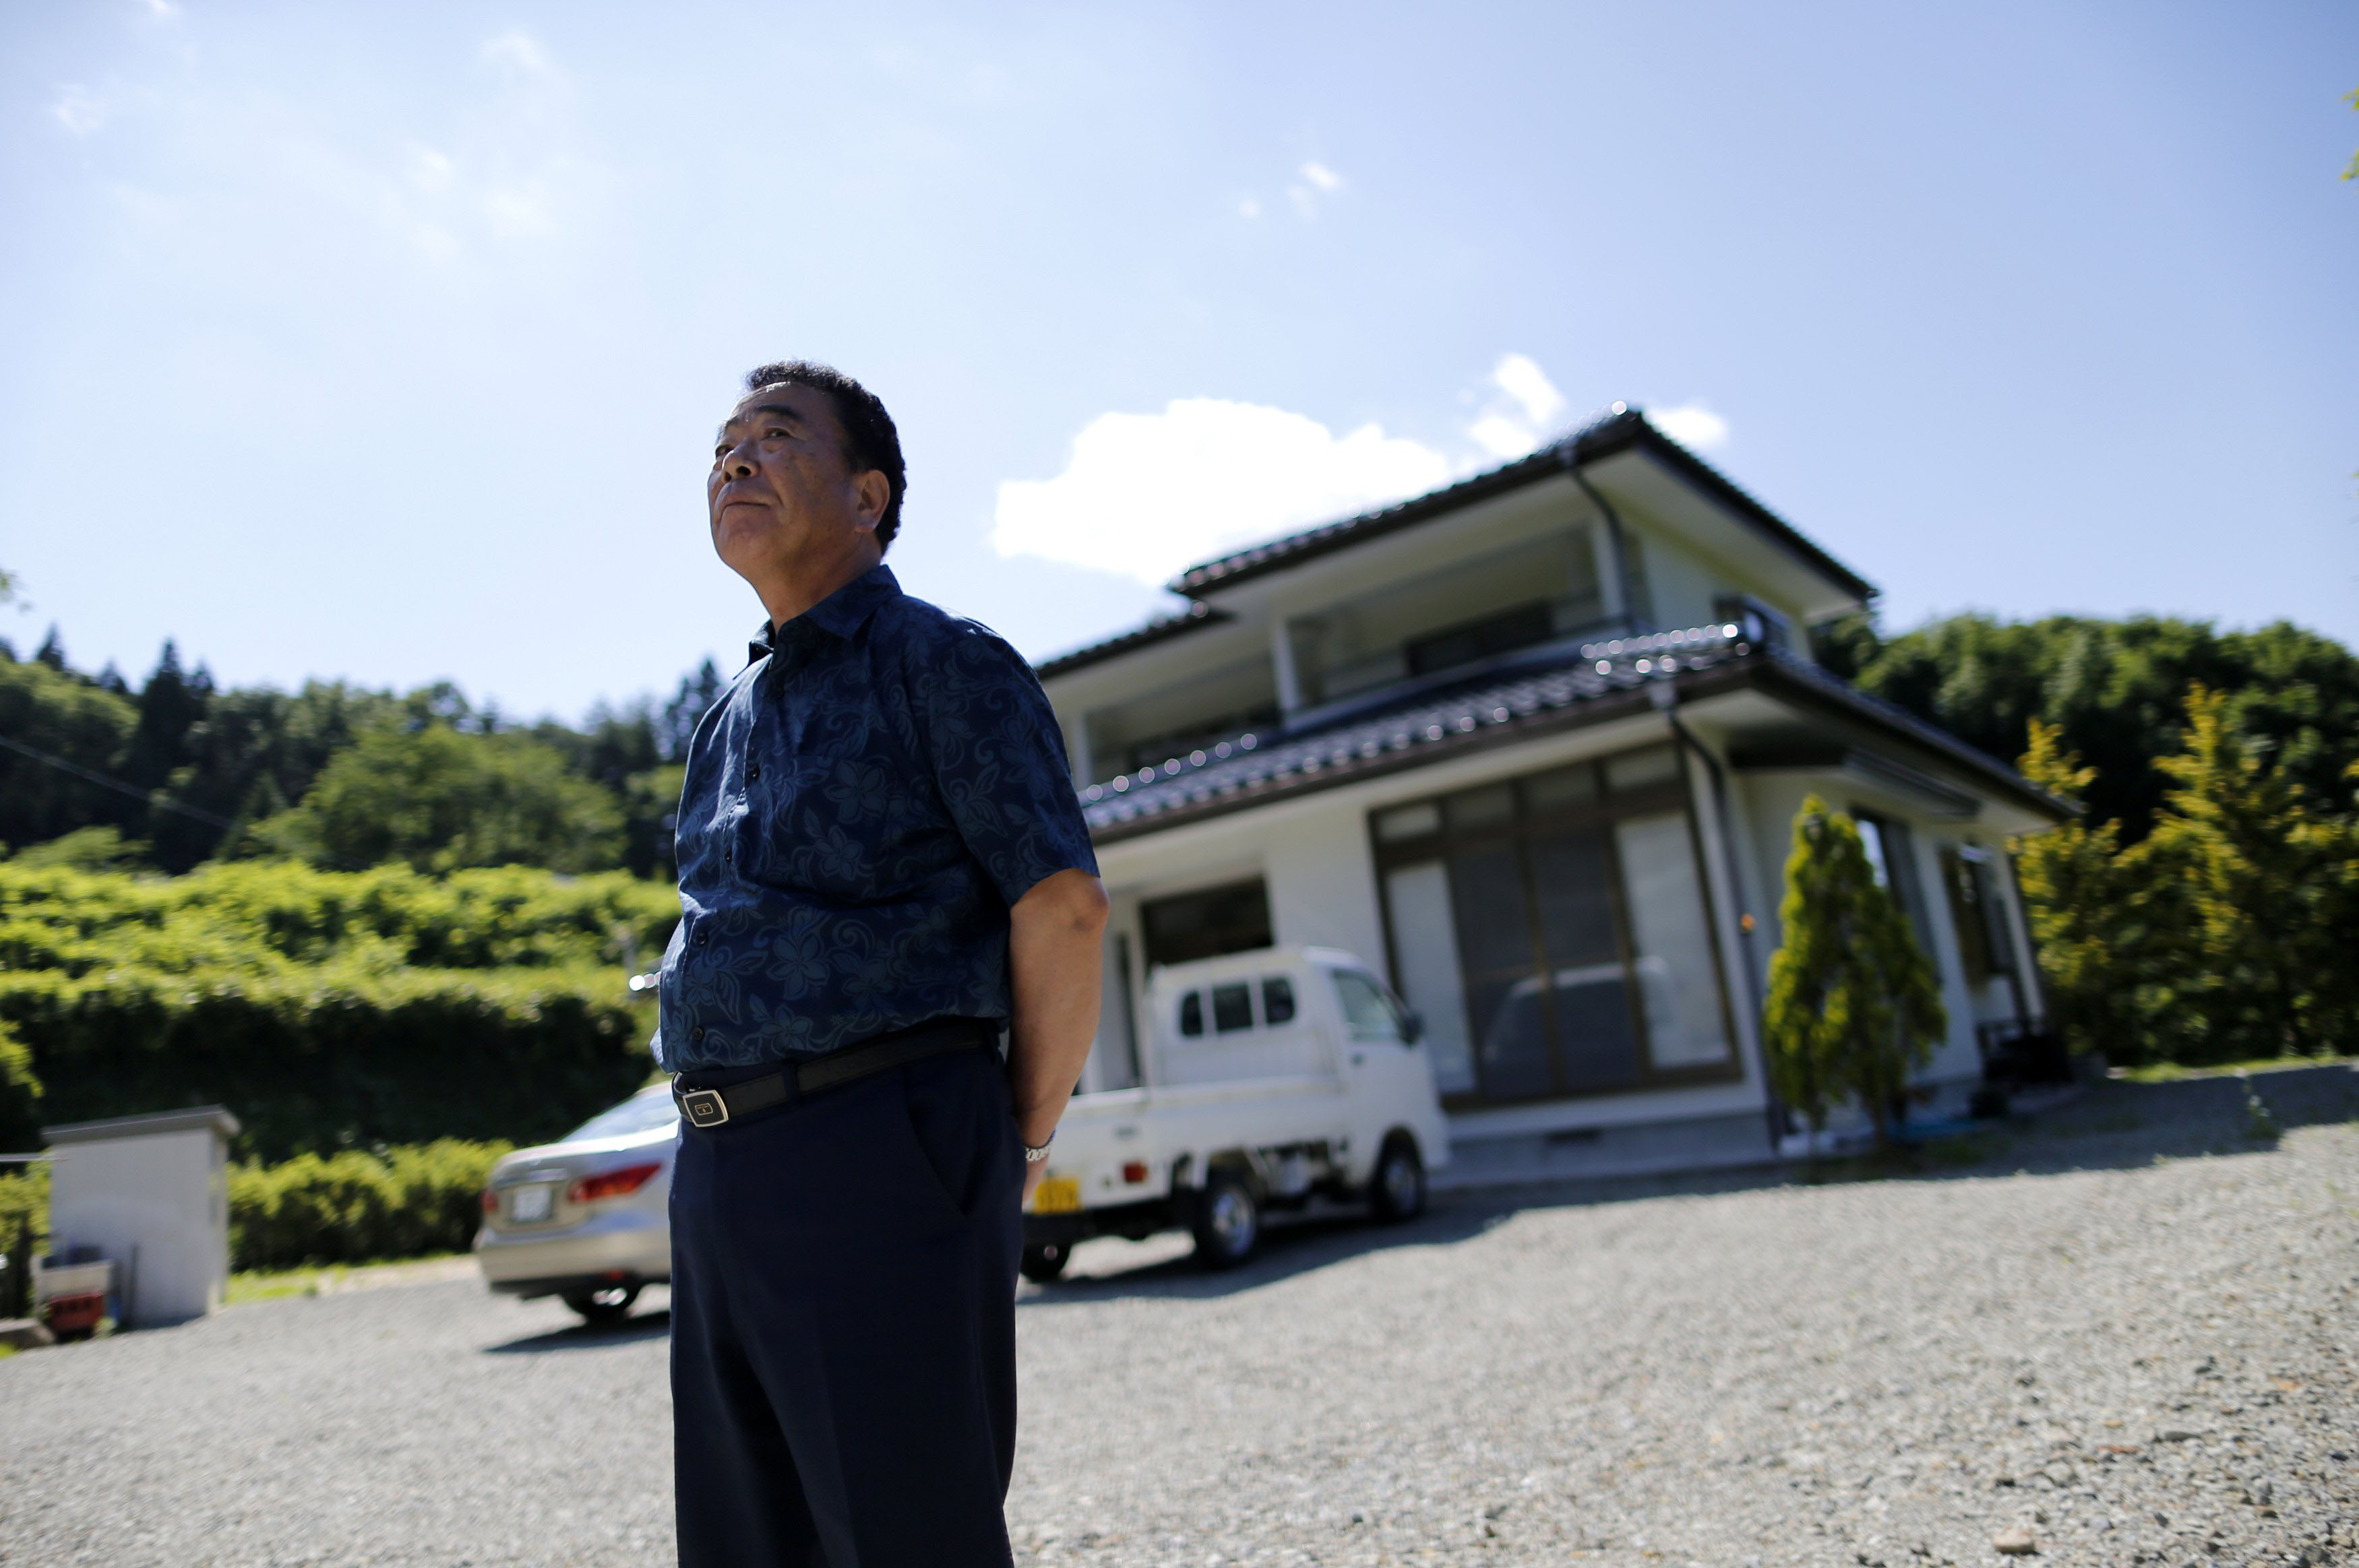 Mikio Watanabe's house in Kawamata, Fukushima Prefecture, remains in an exclusion zone and all he can do is maintain it during short visits. Being unemployed and forced to live elsewhere was too much for his wife, who burned herself to death during what she thought would be their final stay at the house. | REUTERS